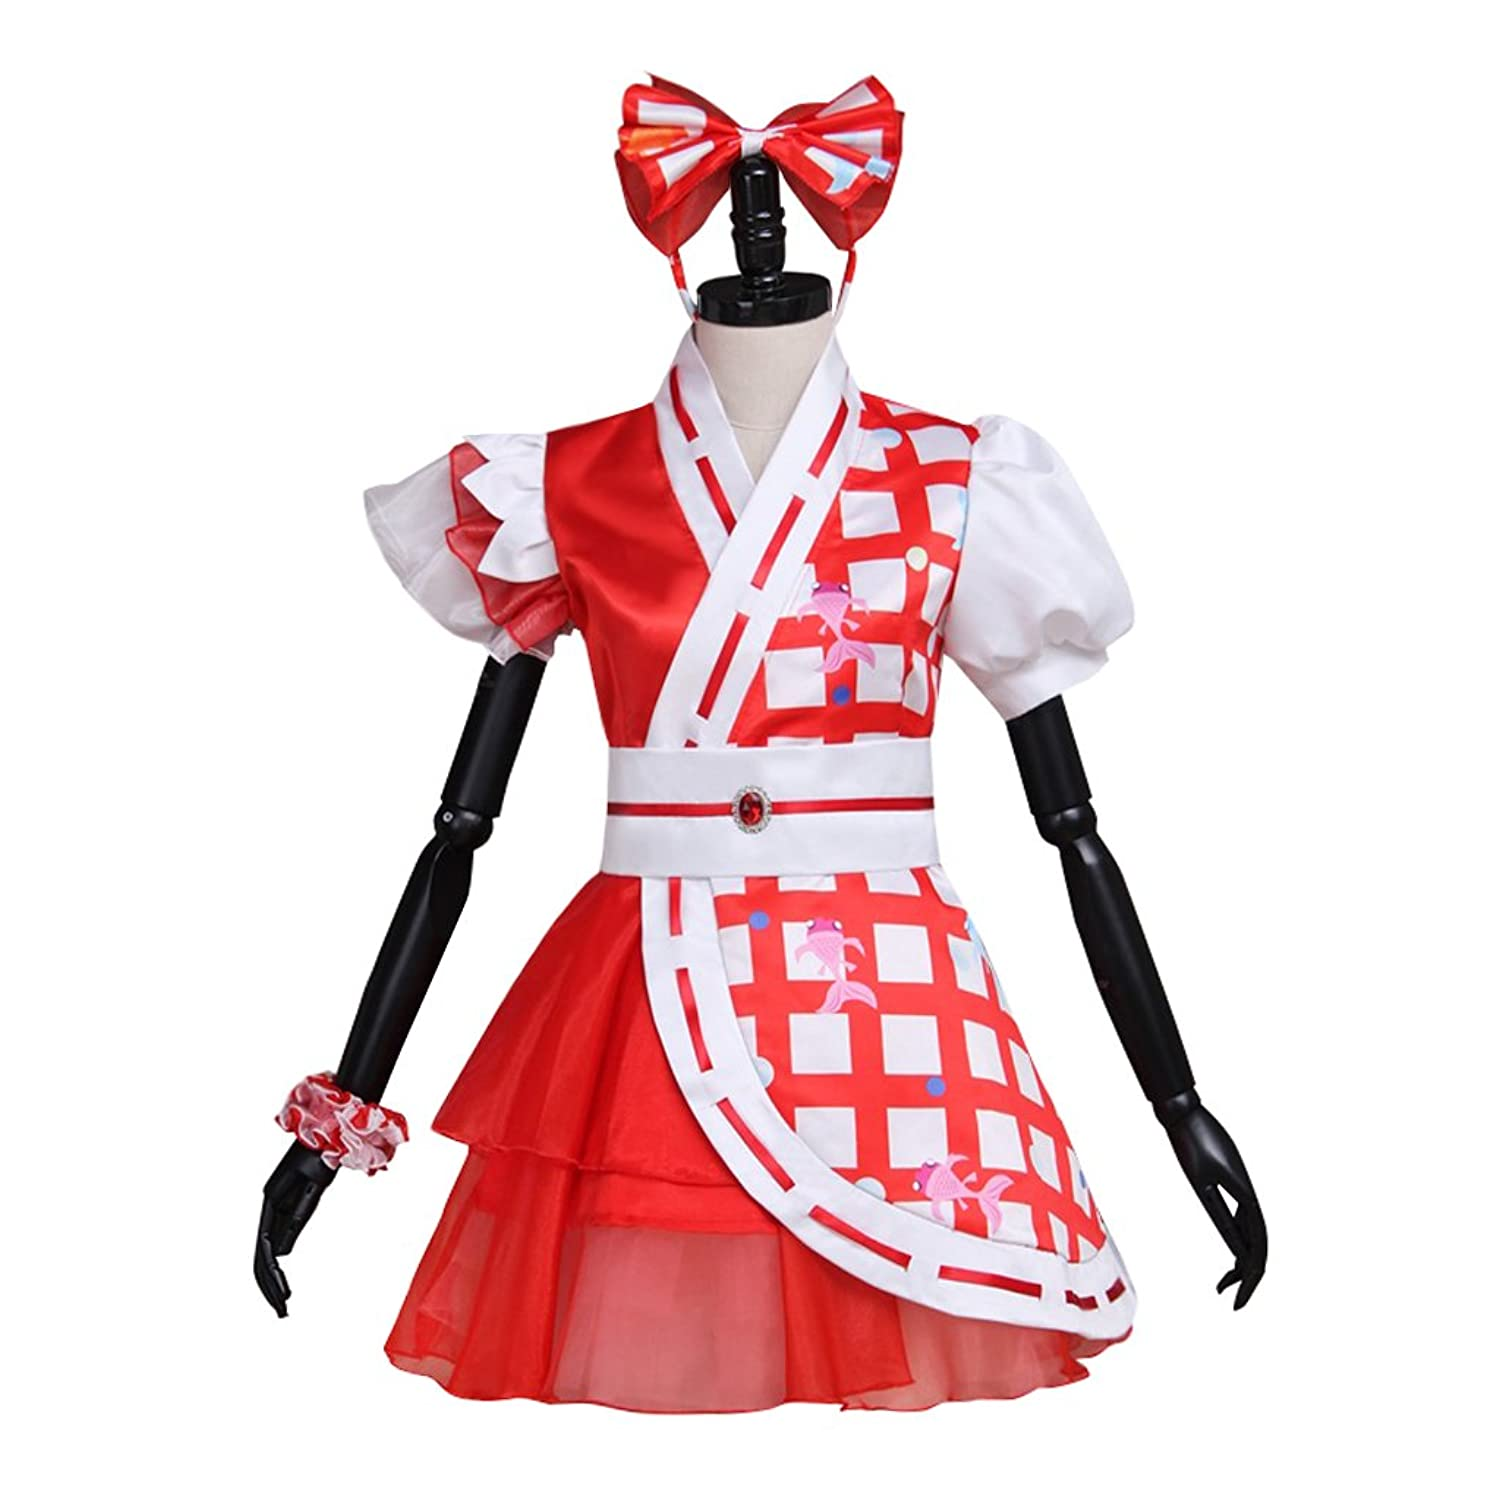 Cosplayitem Women Girls Performance Dresses Party Birthday Dress Fancy Dress Japanese Style Cosplay Dress Red